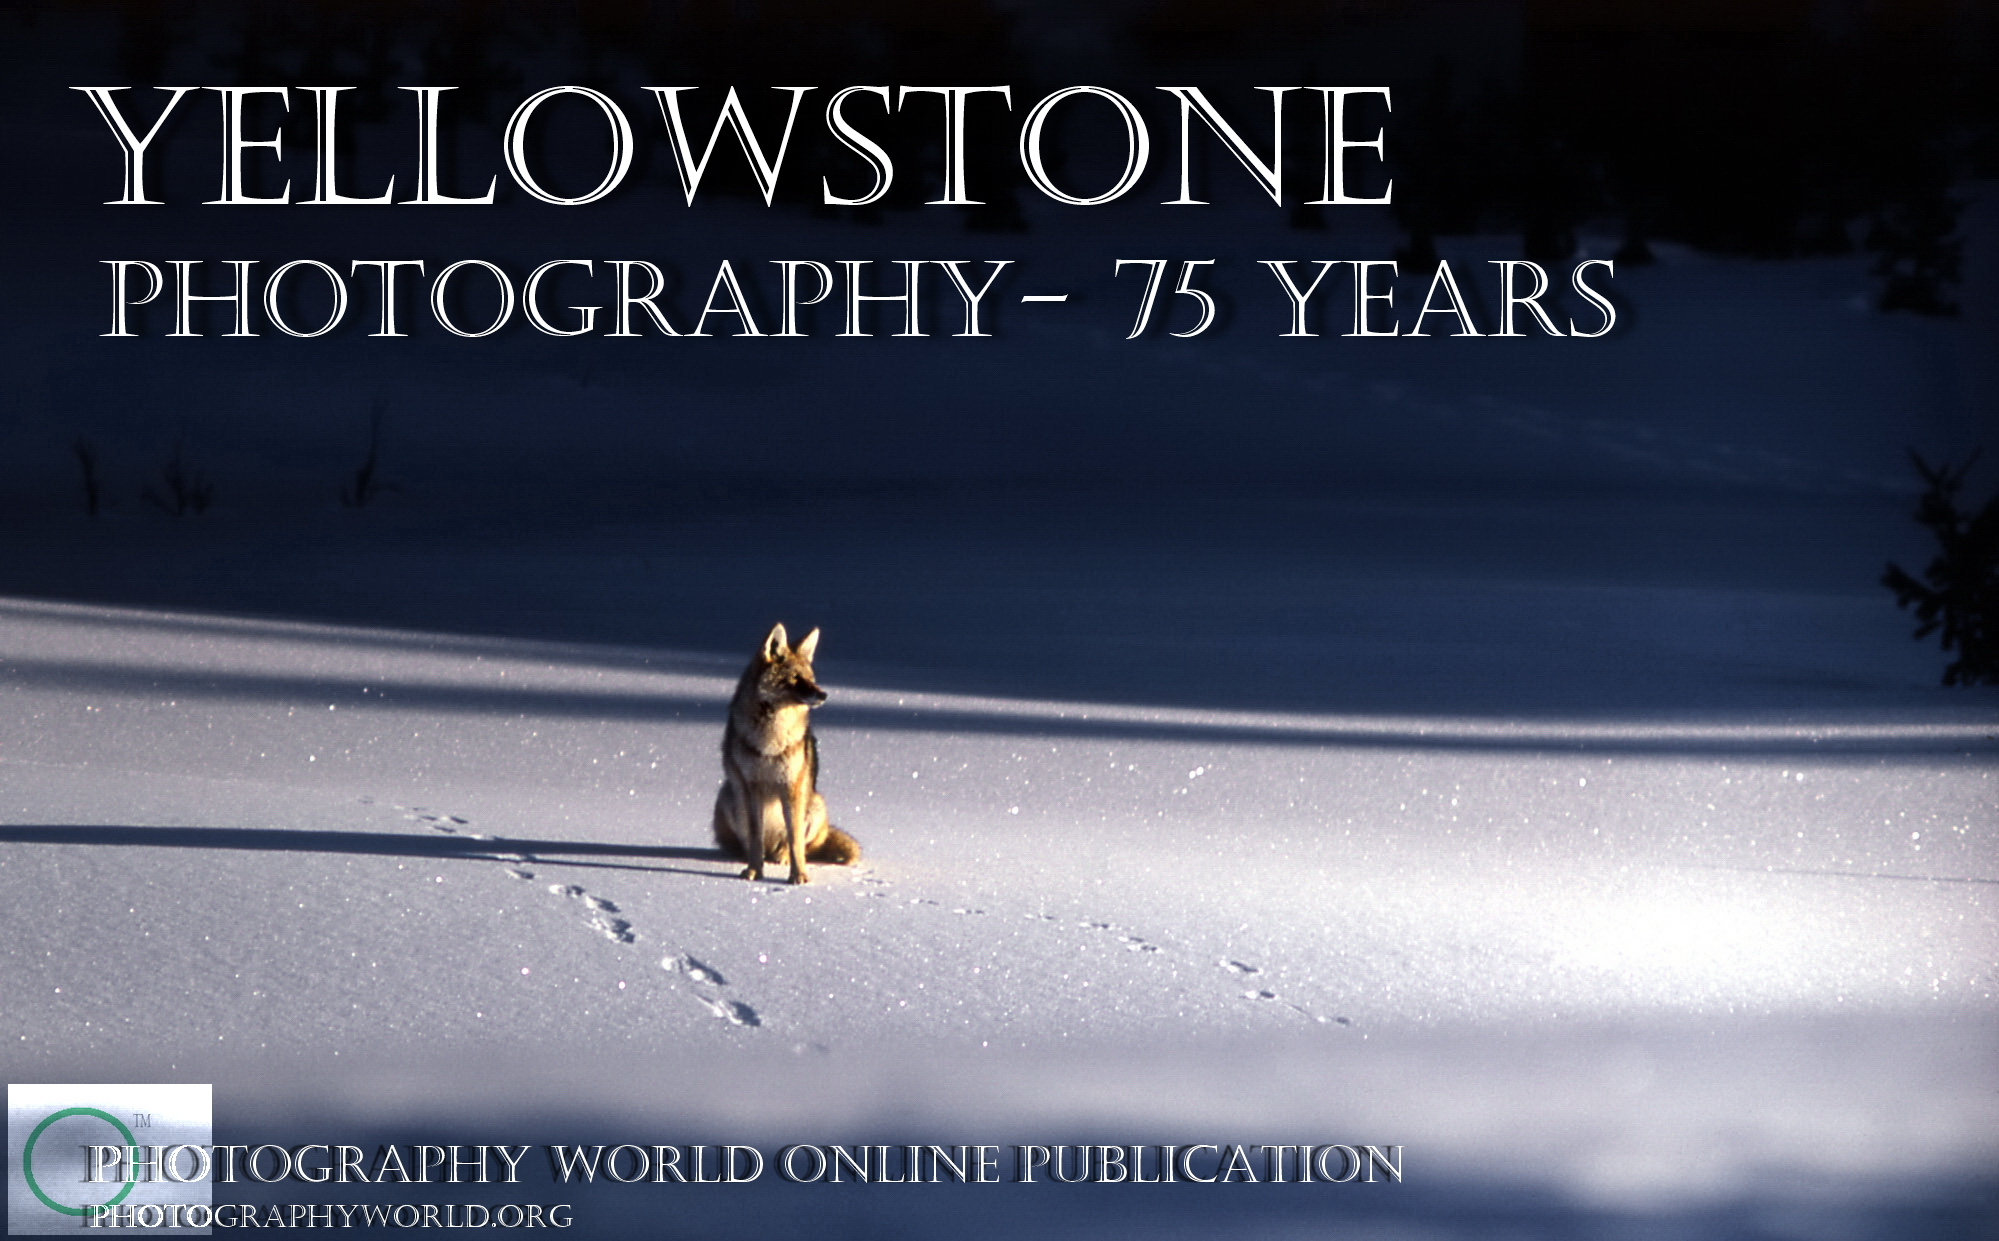 Coyote by NPS Photographer JR Douglass. Yellowstone 1968. Title Cover for PHOTOGRAPHY WORLD article, YELLOWSTONE Photography- 50 Years